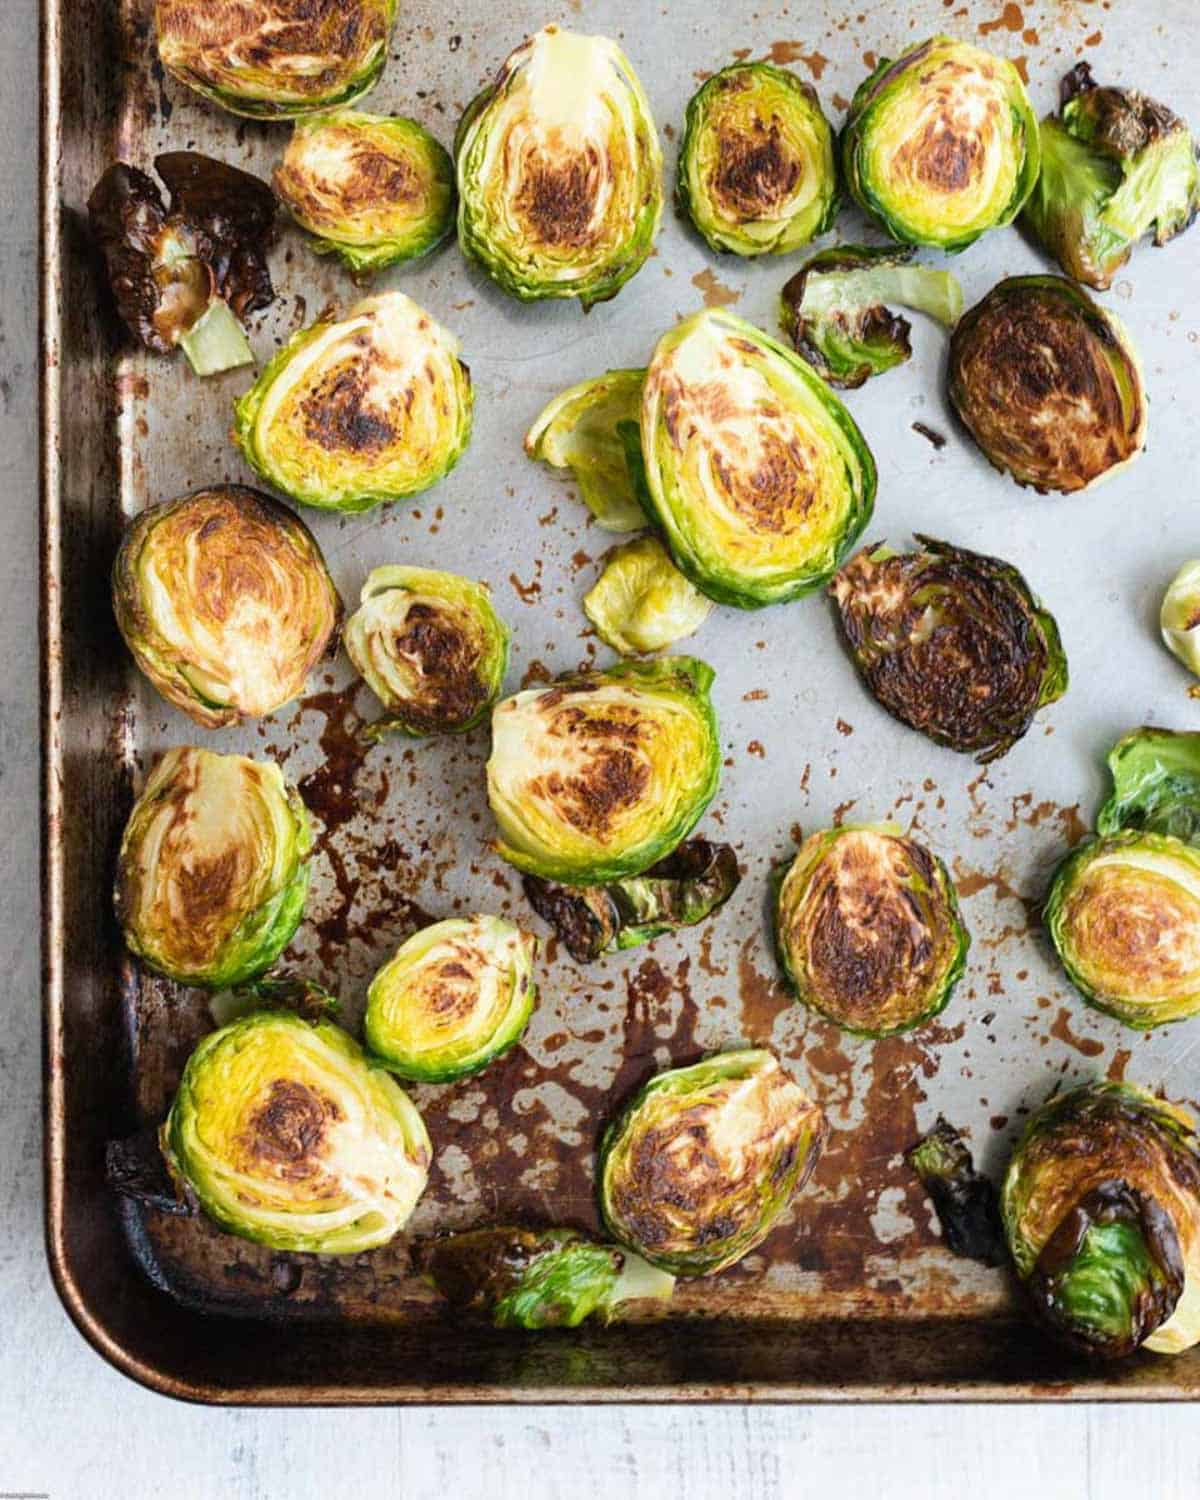 Roasted, charred Brussels sprouts on a large baking sheet.